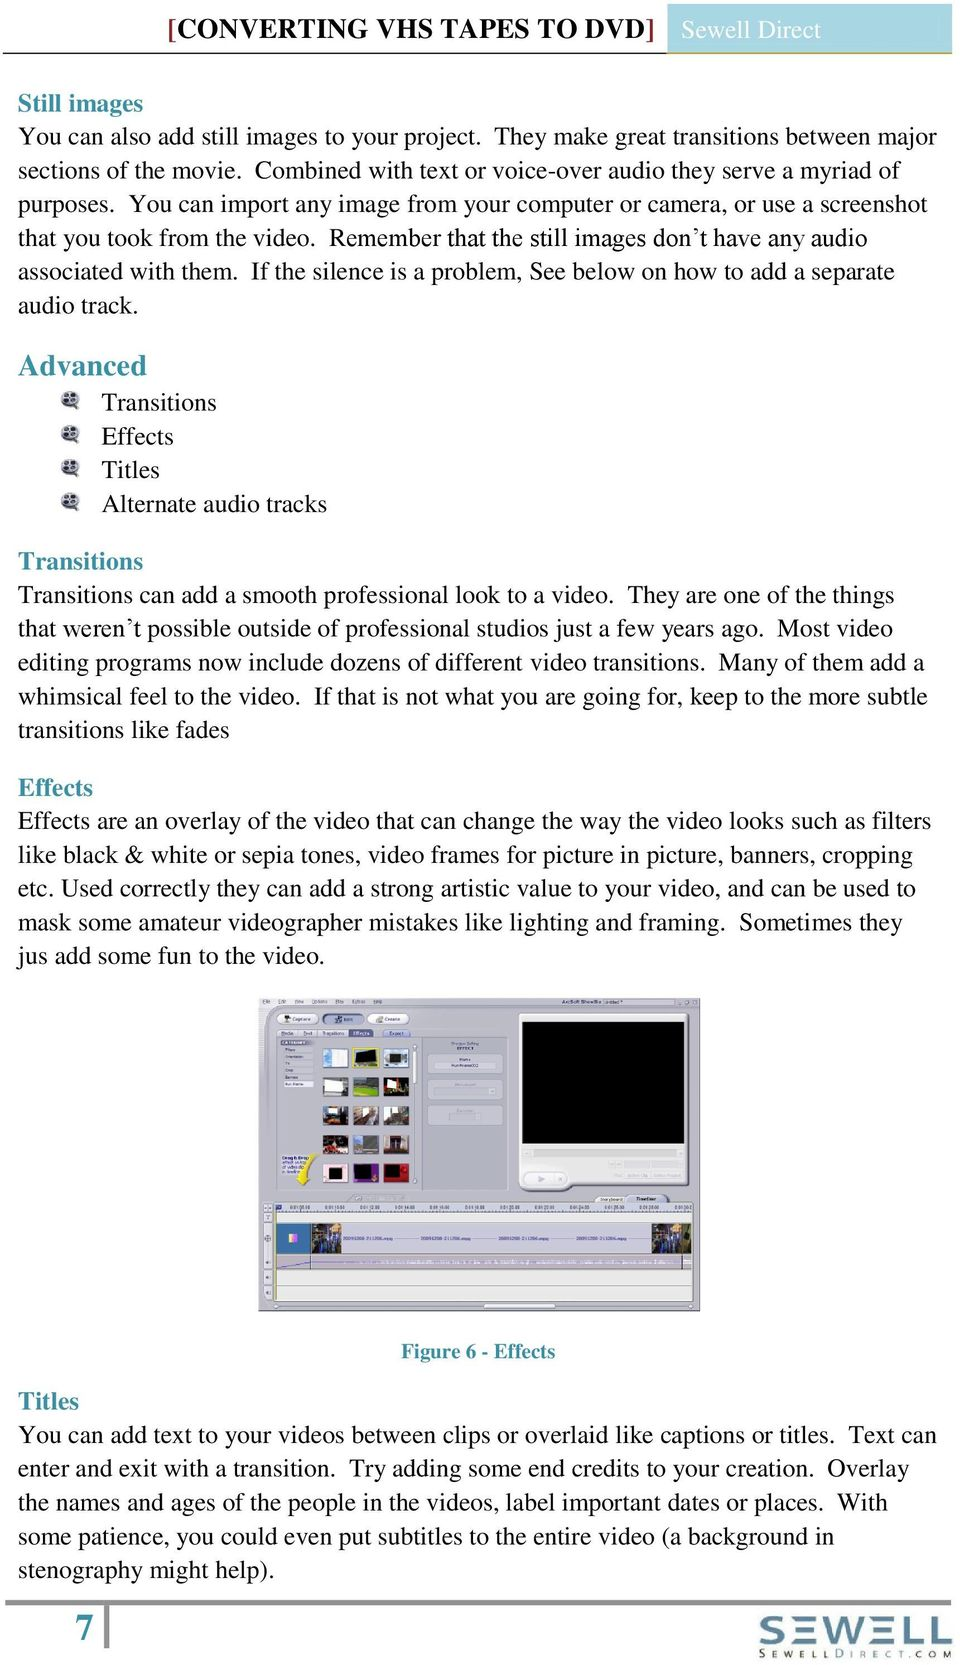 DoItYourself  Converting VHS tapes to DVD - PDF